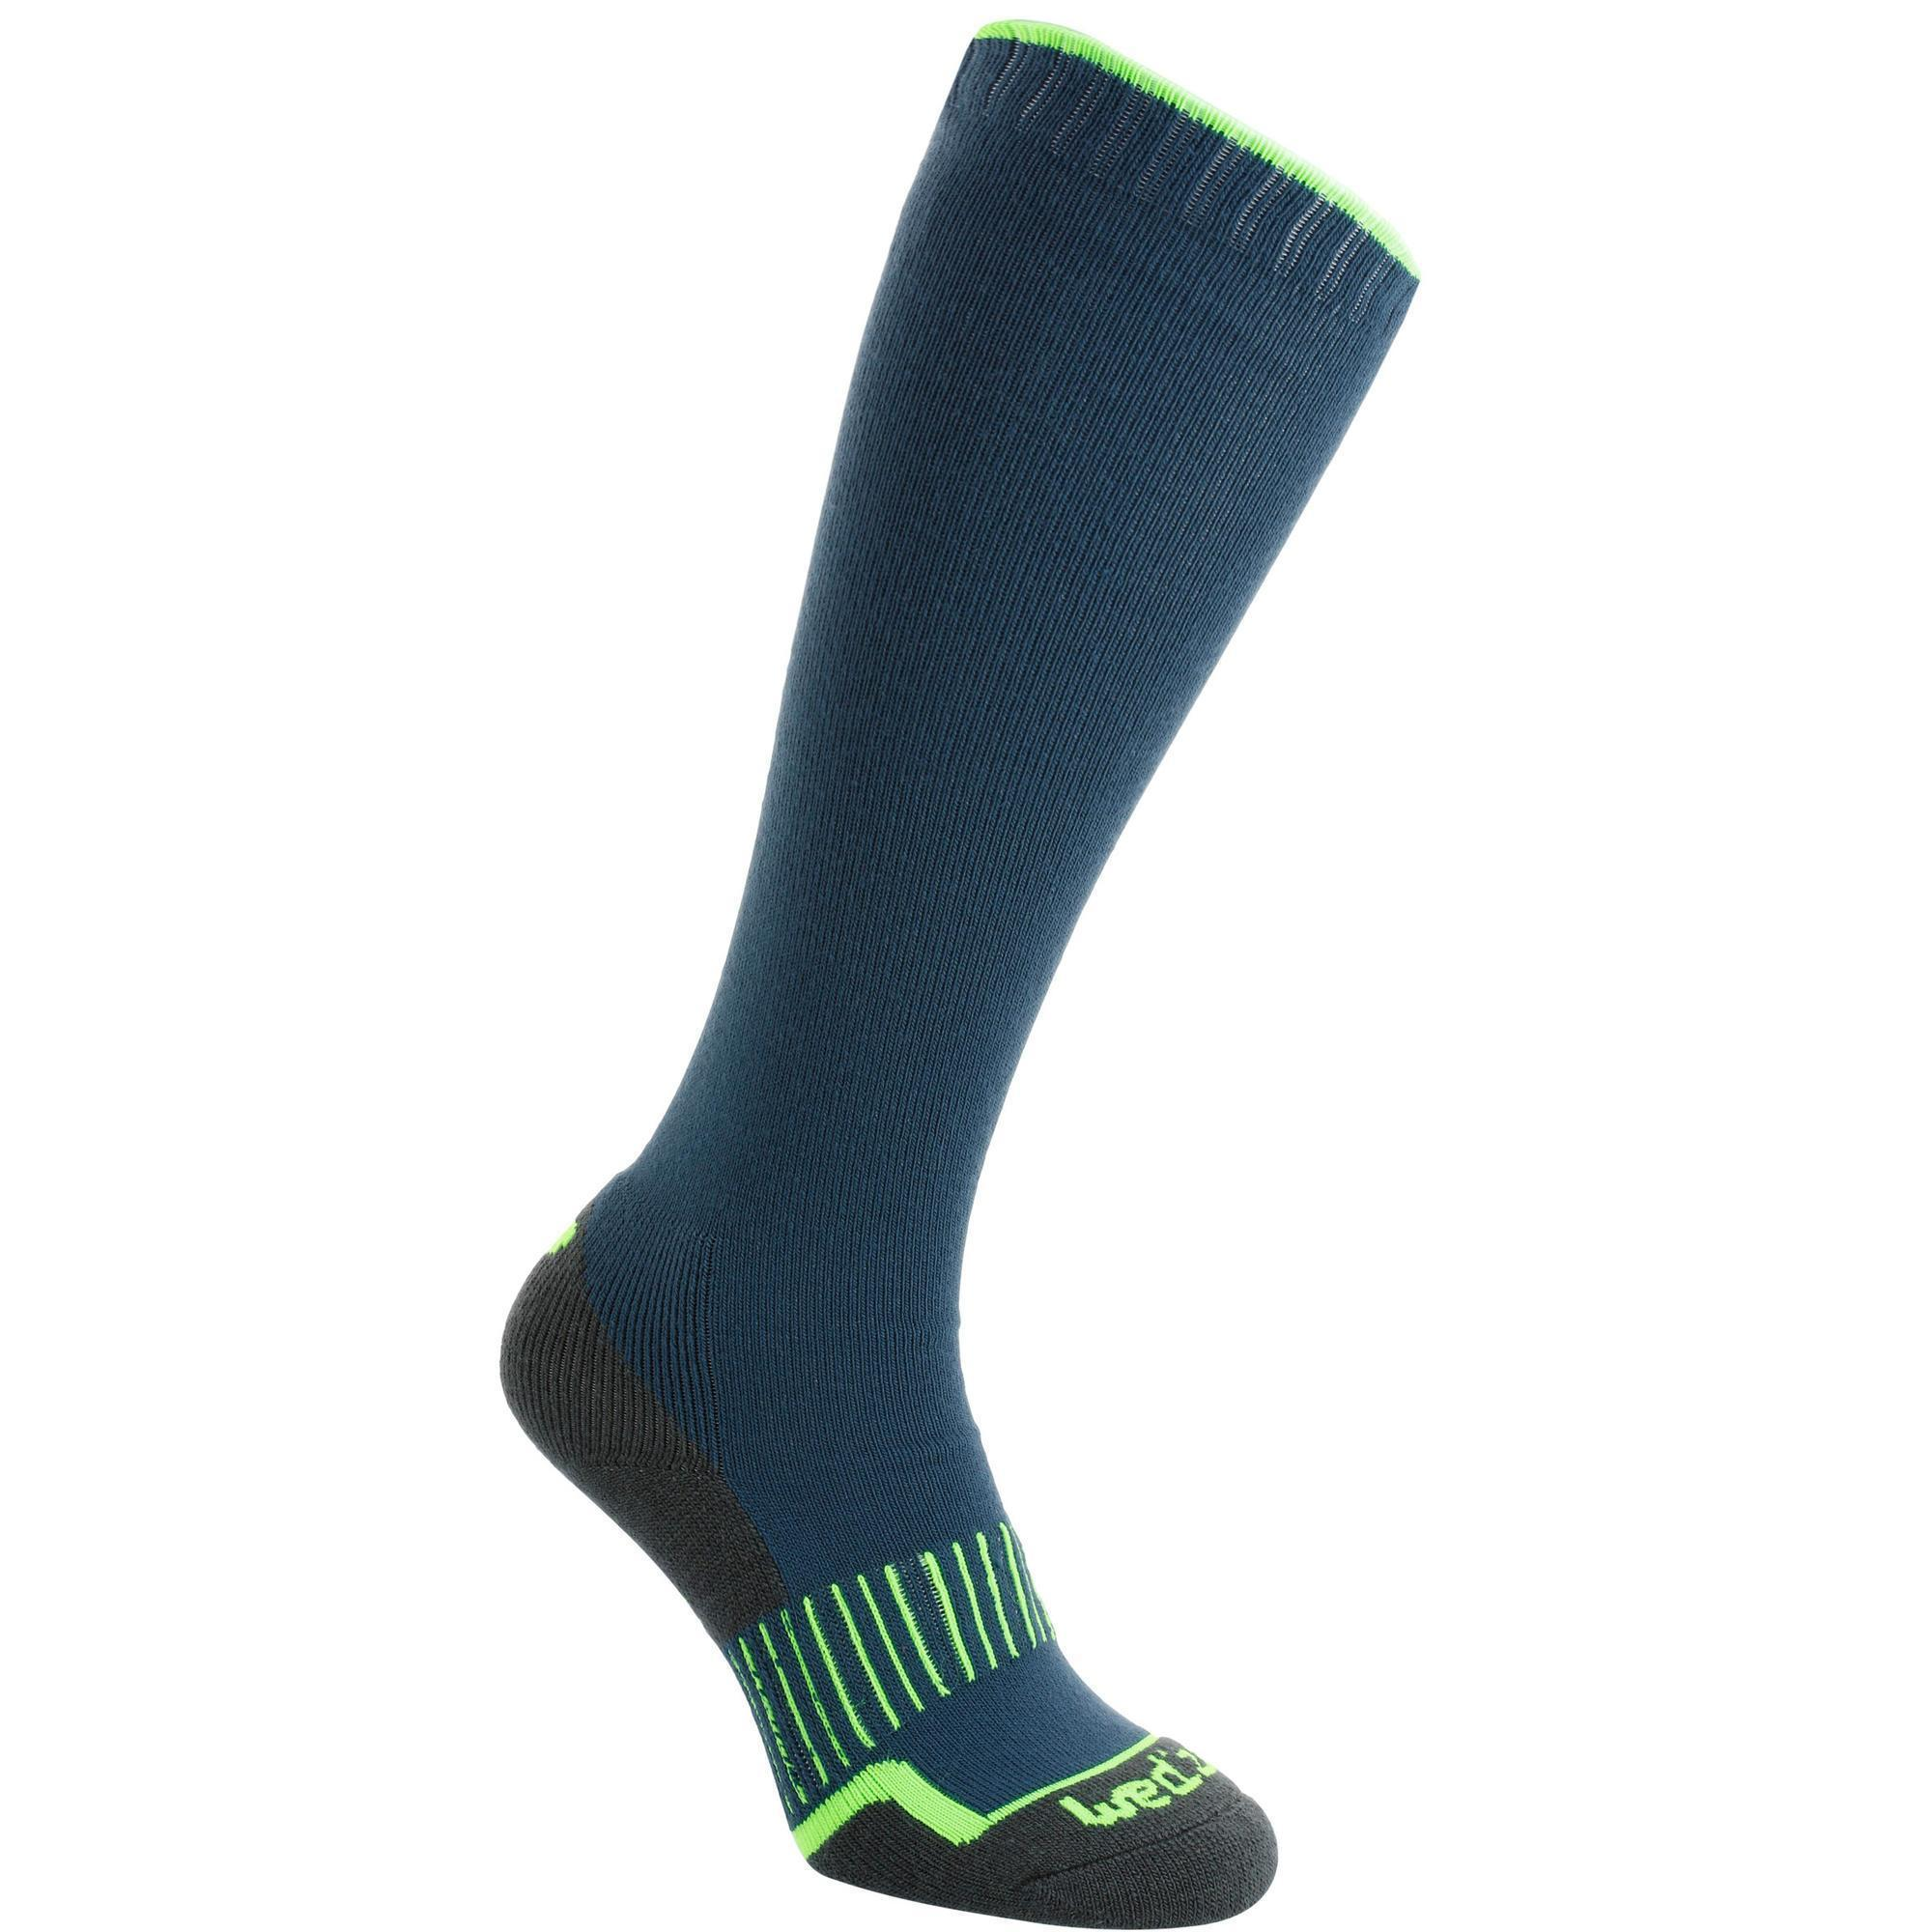 chaussette de ski warm 100 bleu vert fluo wedze. Black Bedroom Furniture Sets. Home Design Ideas